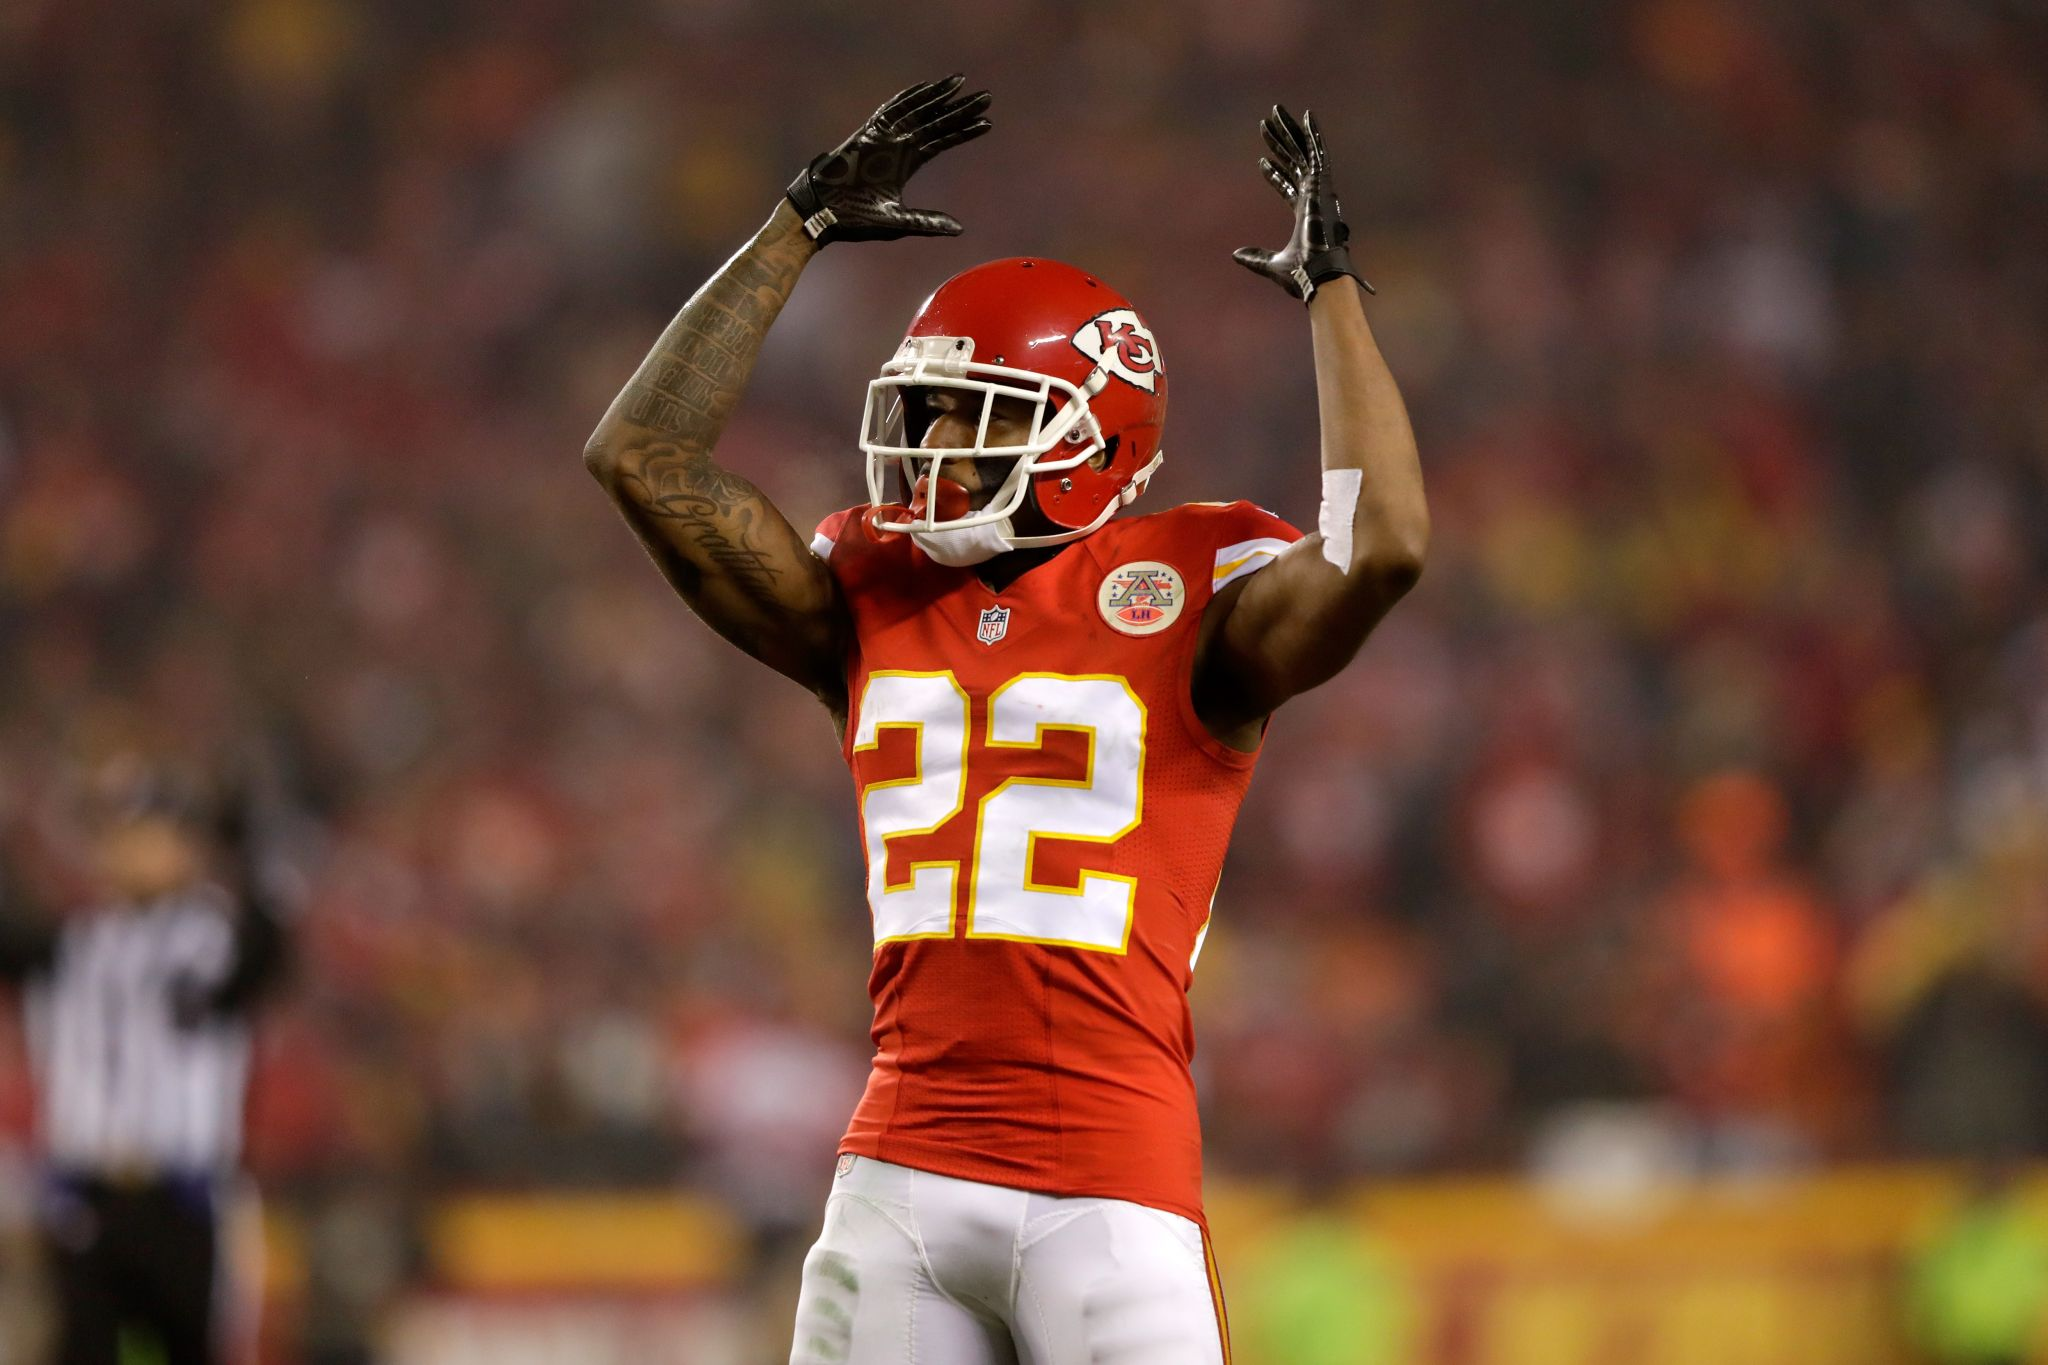 Oakland native Chiefs CB Marcus Peters sits during national